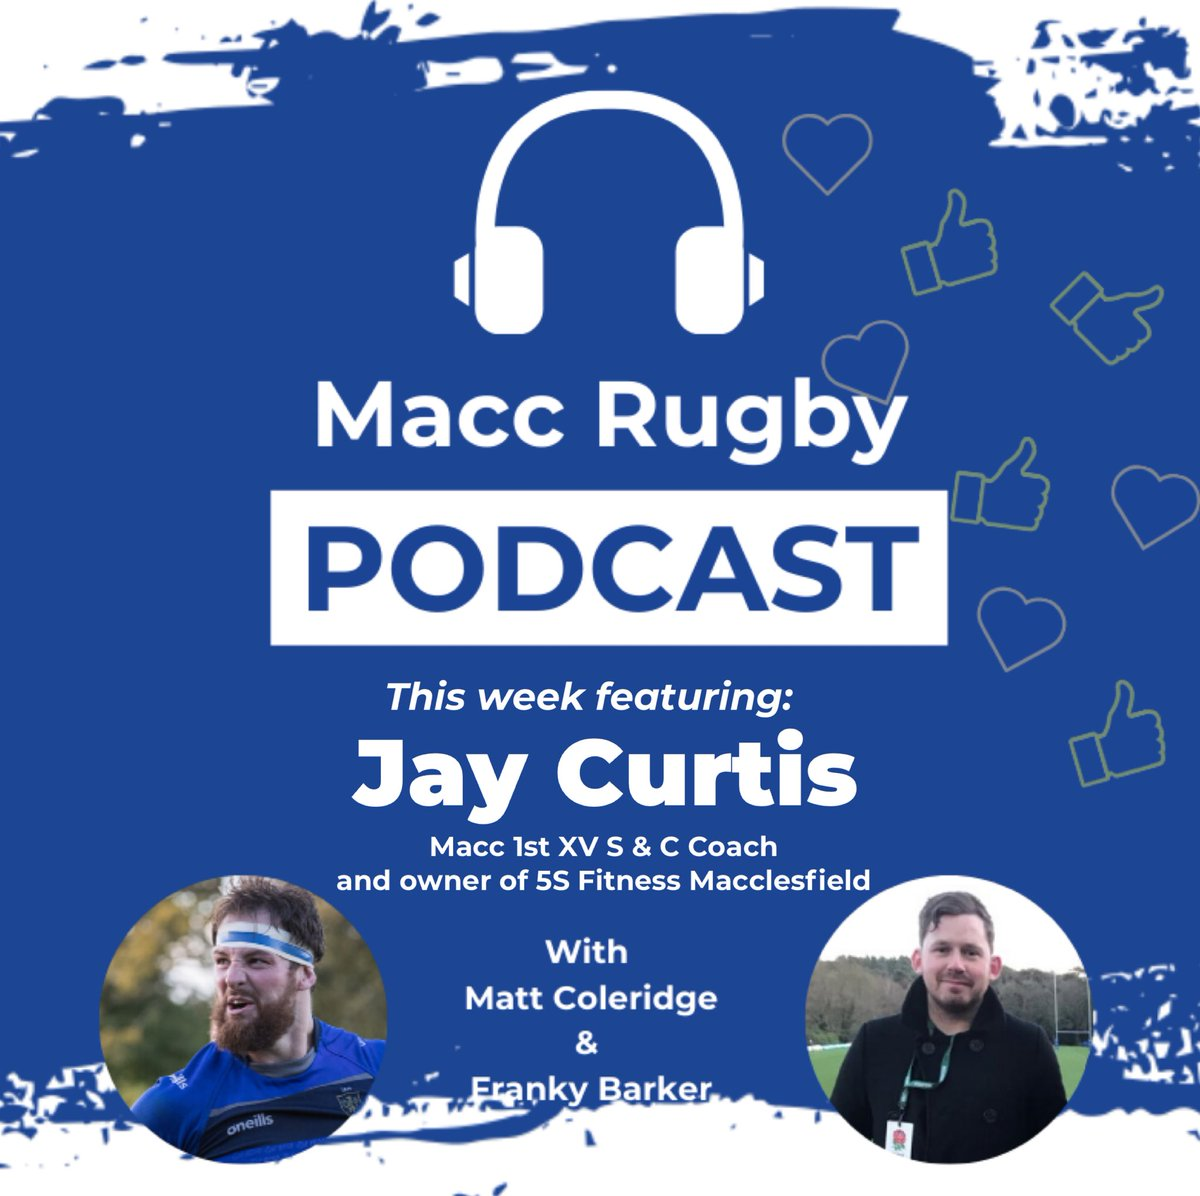 test Twitter Media - NEW POD OUT NOW! 1st XV S & C Coach and owner of @5sitness Jay Curtis tells us about his road to owning his own gym and gives you some tips for how to get fit going forward!! See https://t.co/Vt8gvcjPUG or visit https://t.co/I3VEG4yERy for more details! https://t.co/a8RjTKmLcm